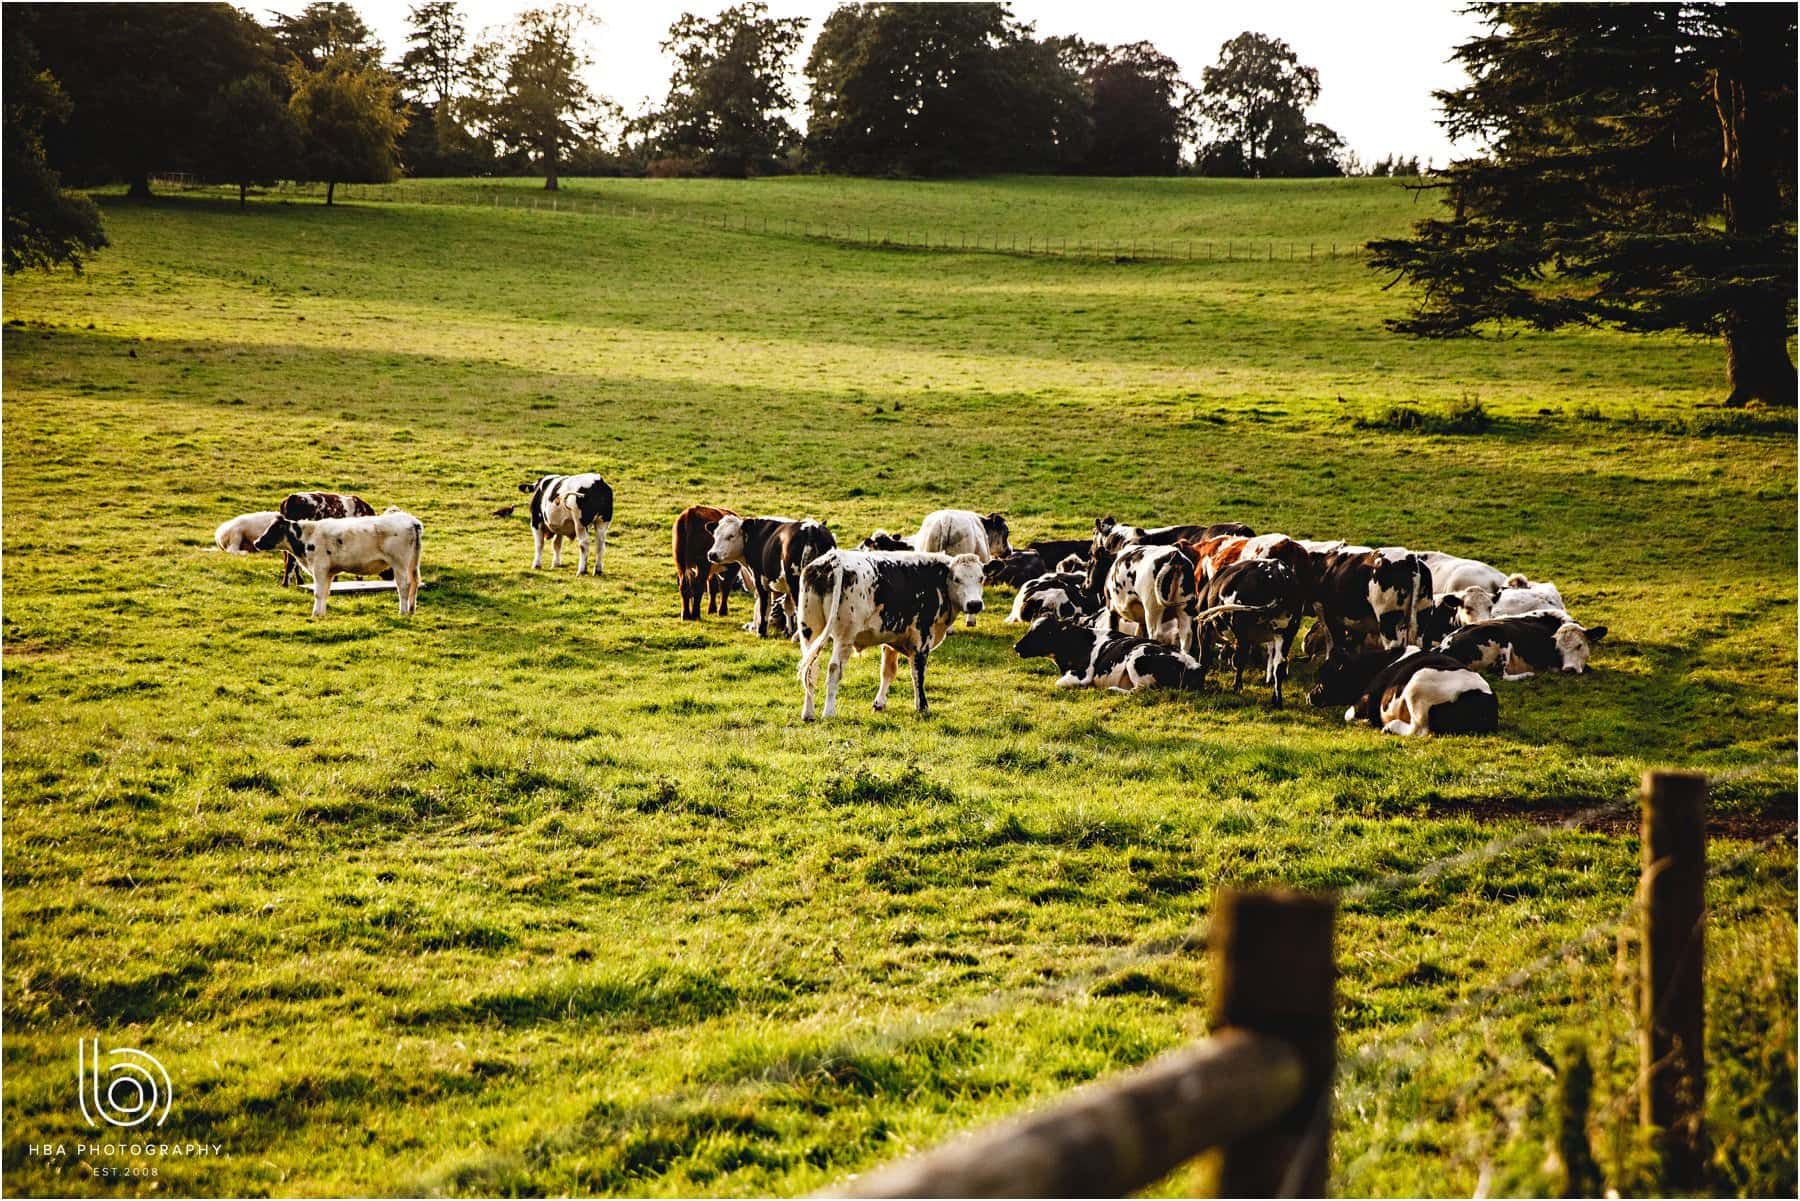 cows in the field at Osmaston Park